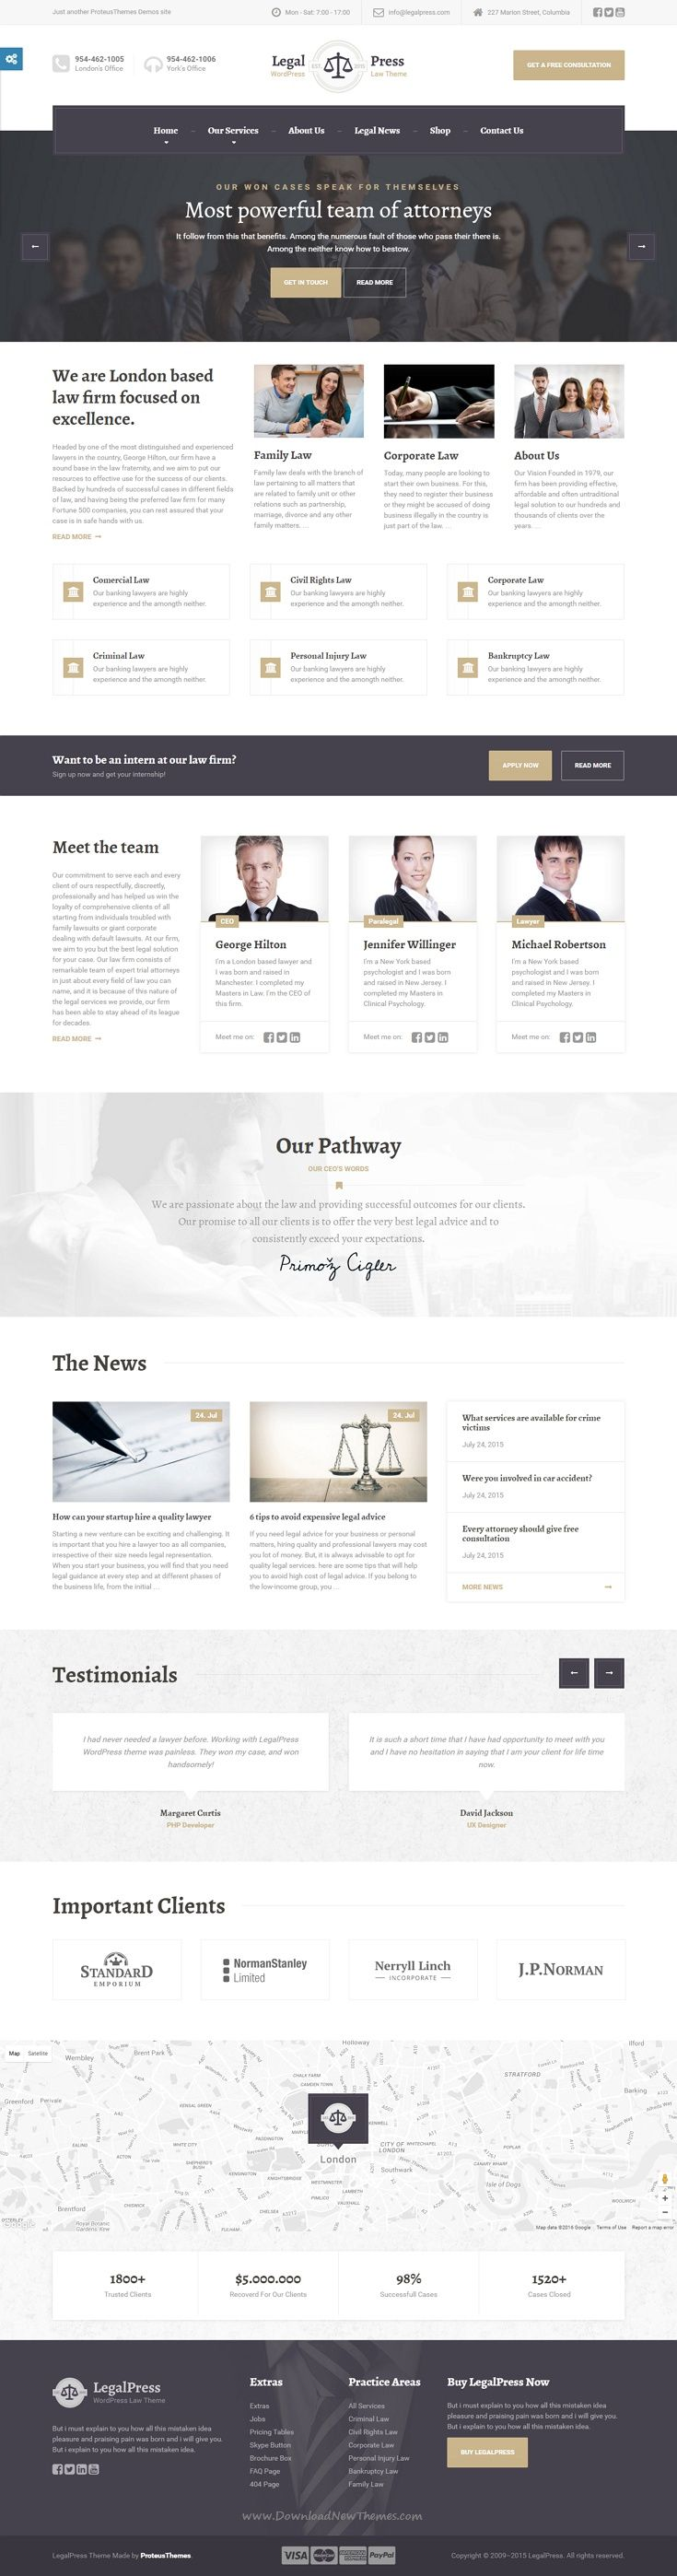 LegalPress, the best premium Bootstrap HTML template for lawyers, law firms, legal offices, attorneys, #solicitors, barristers, advisers, #consultants, and financial firms #website.